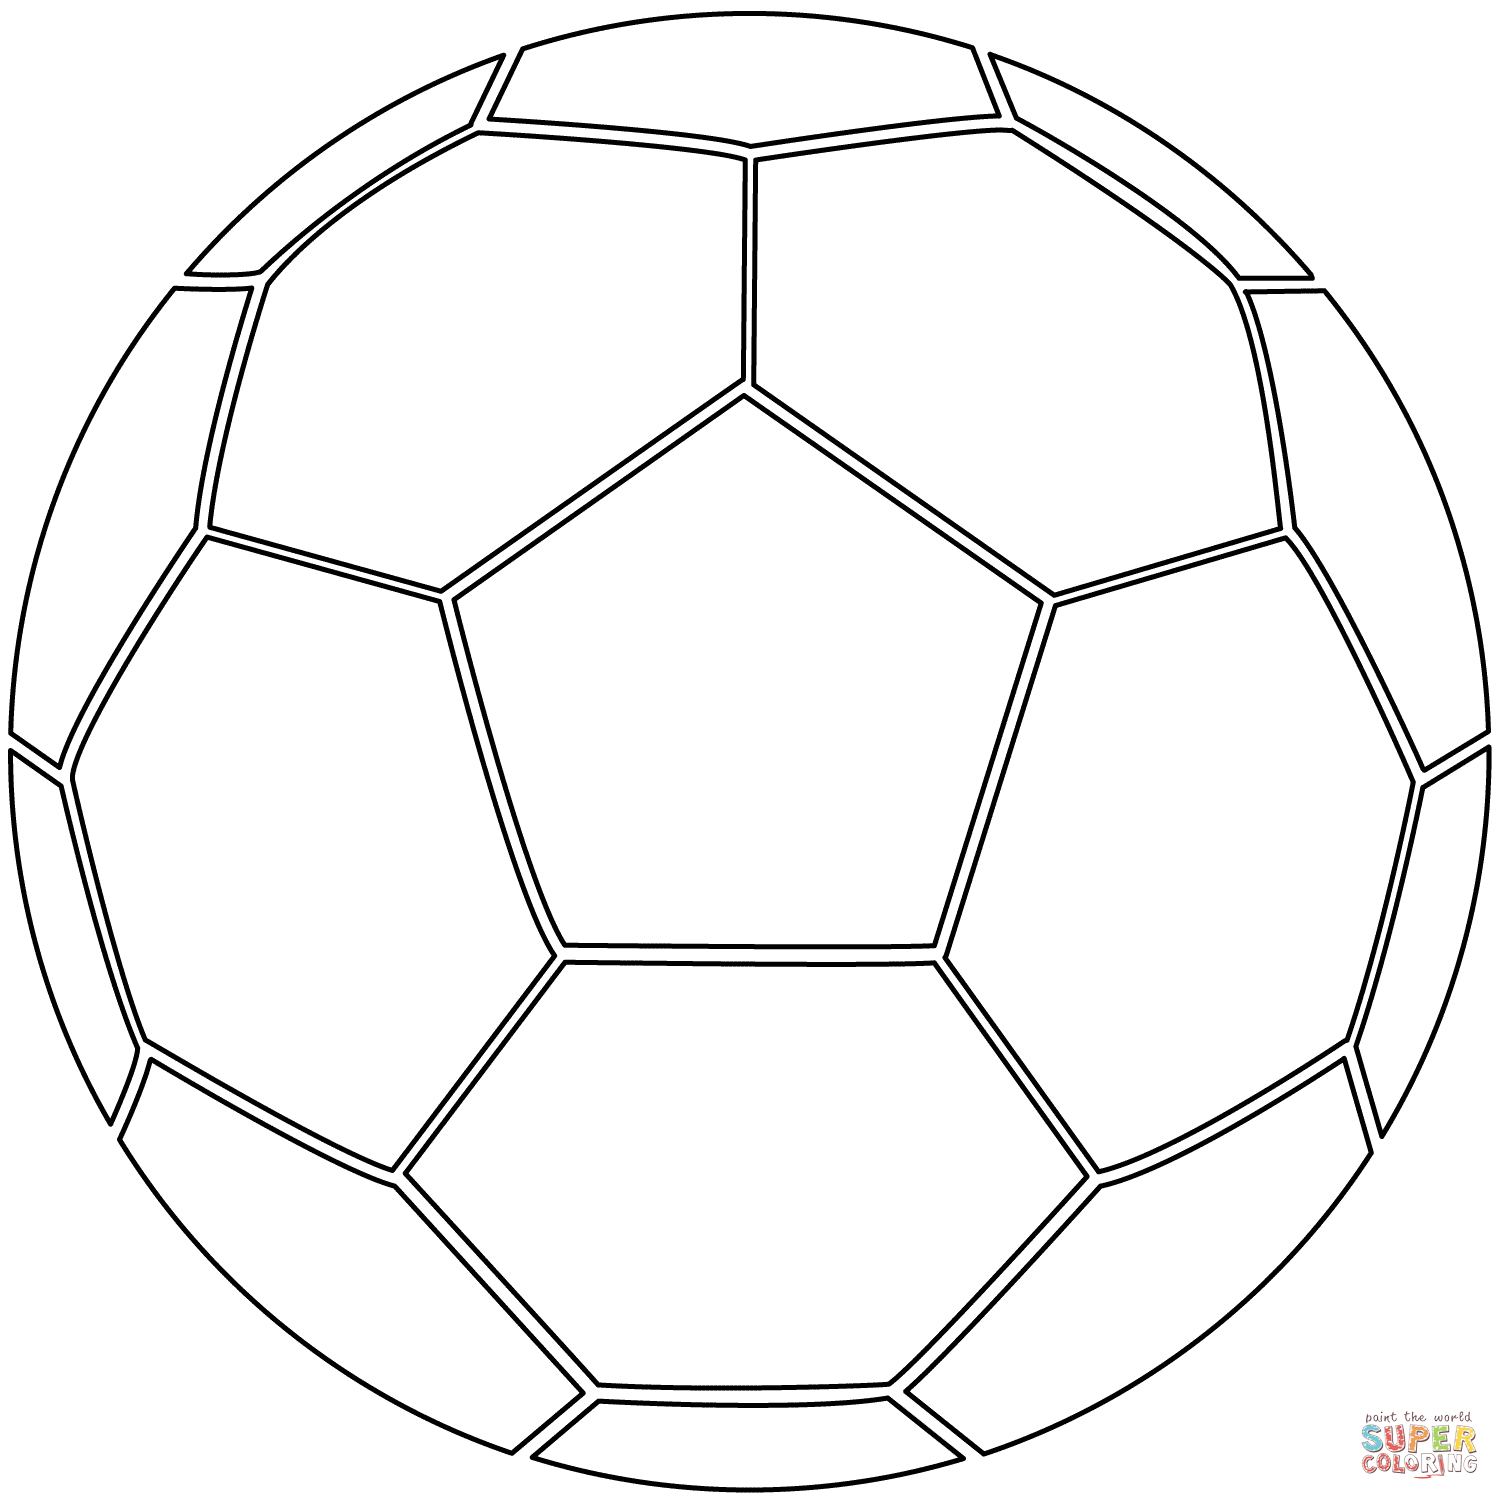 cool soccer balls coloring pages - photo#4